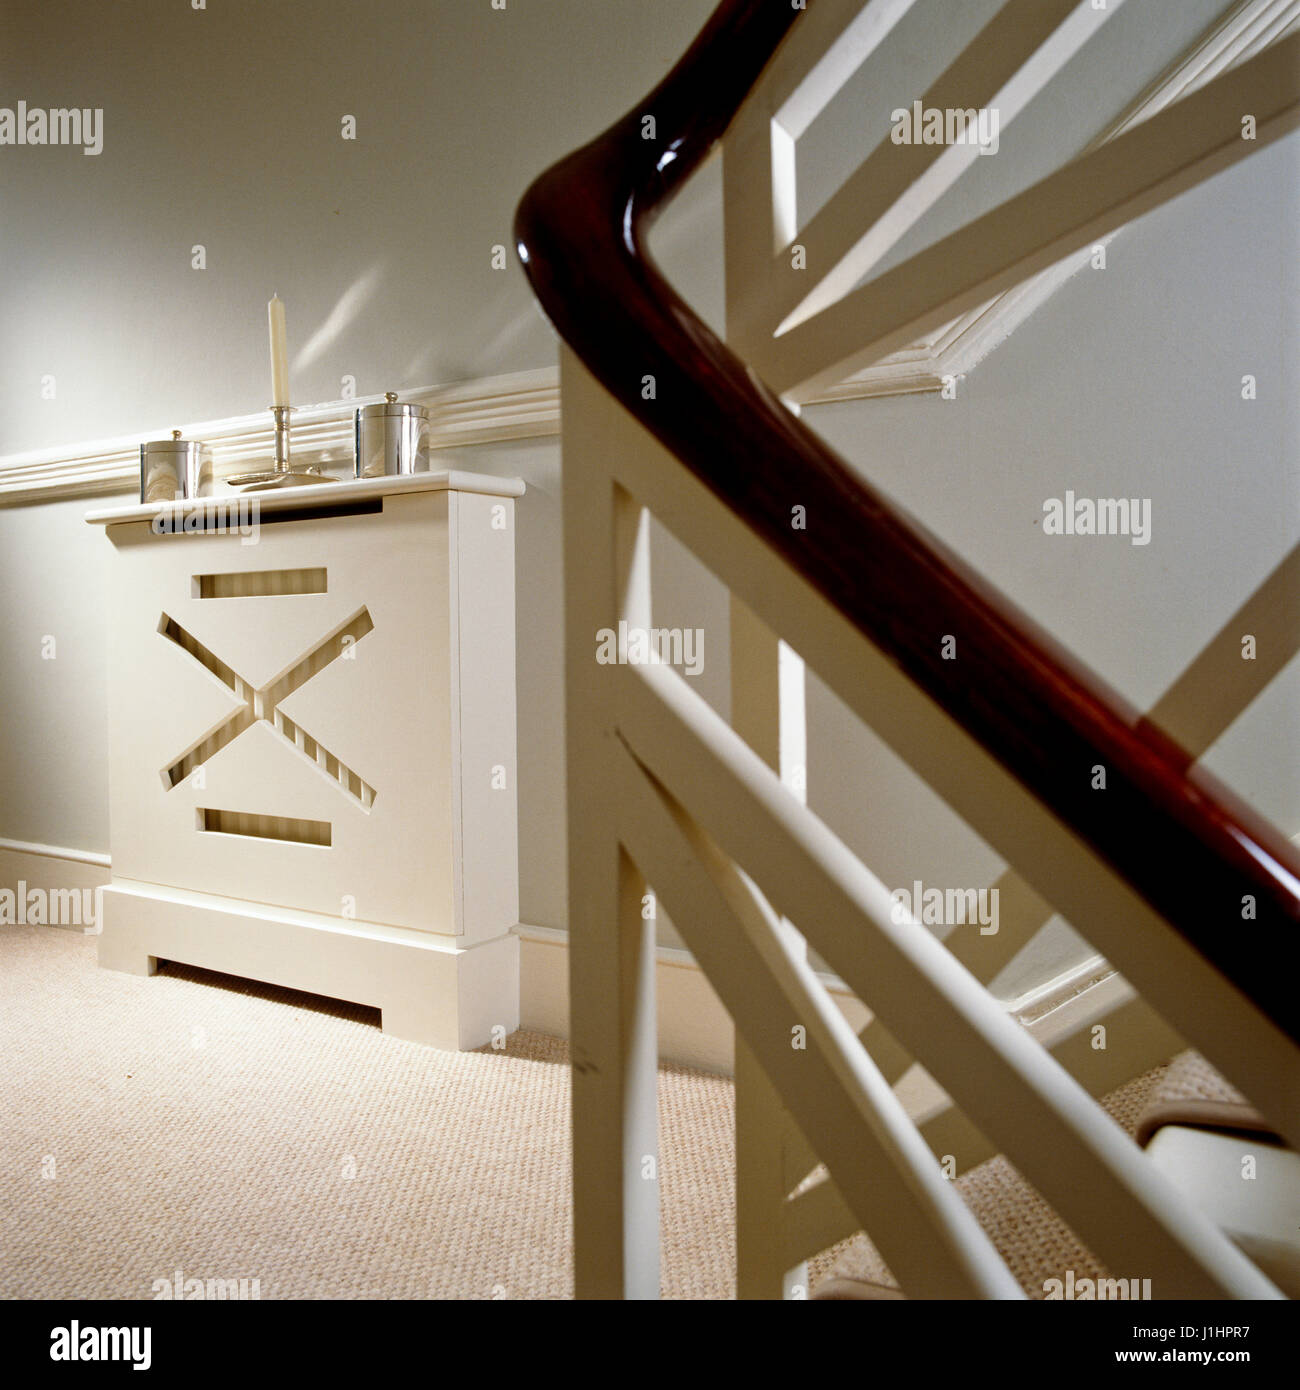 Staircase railing. - Stock Image